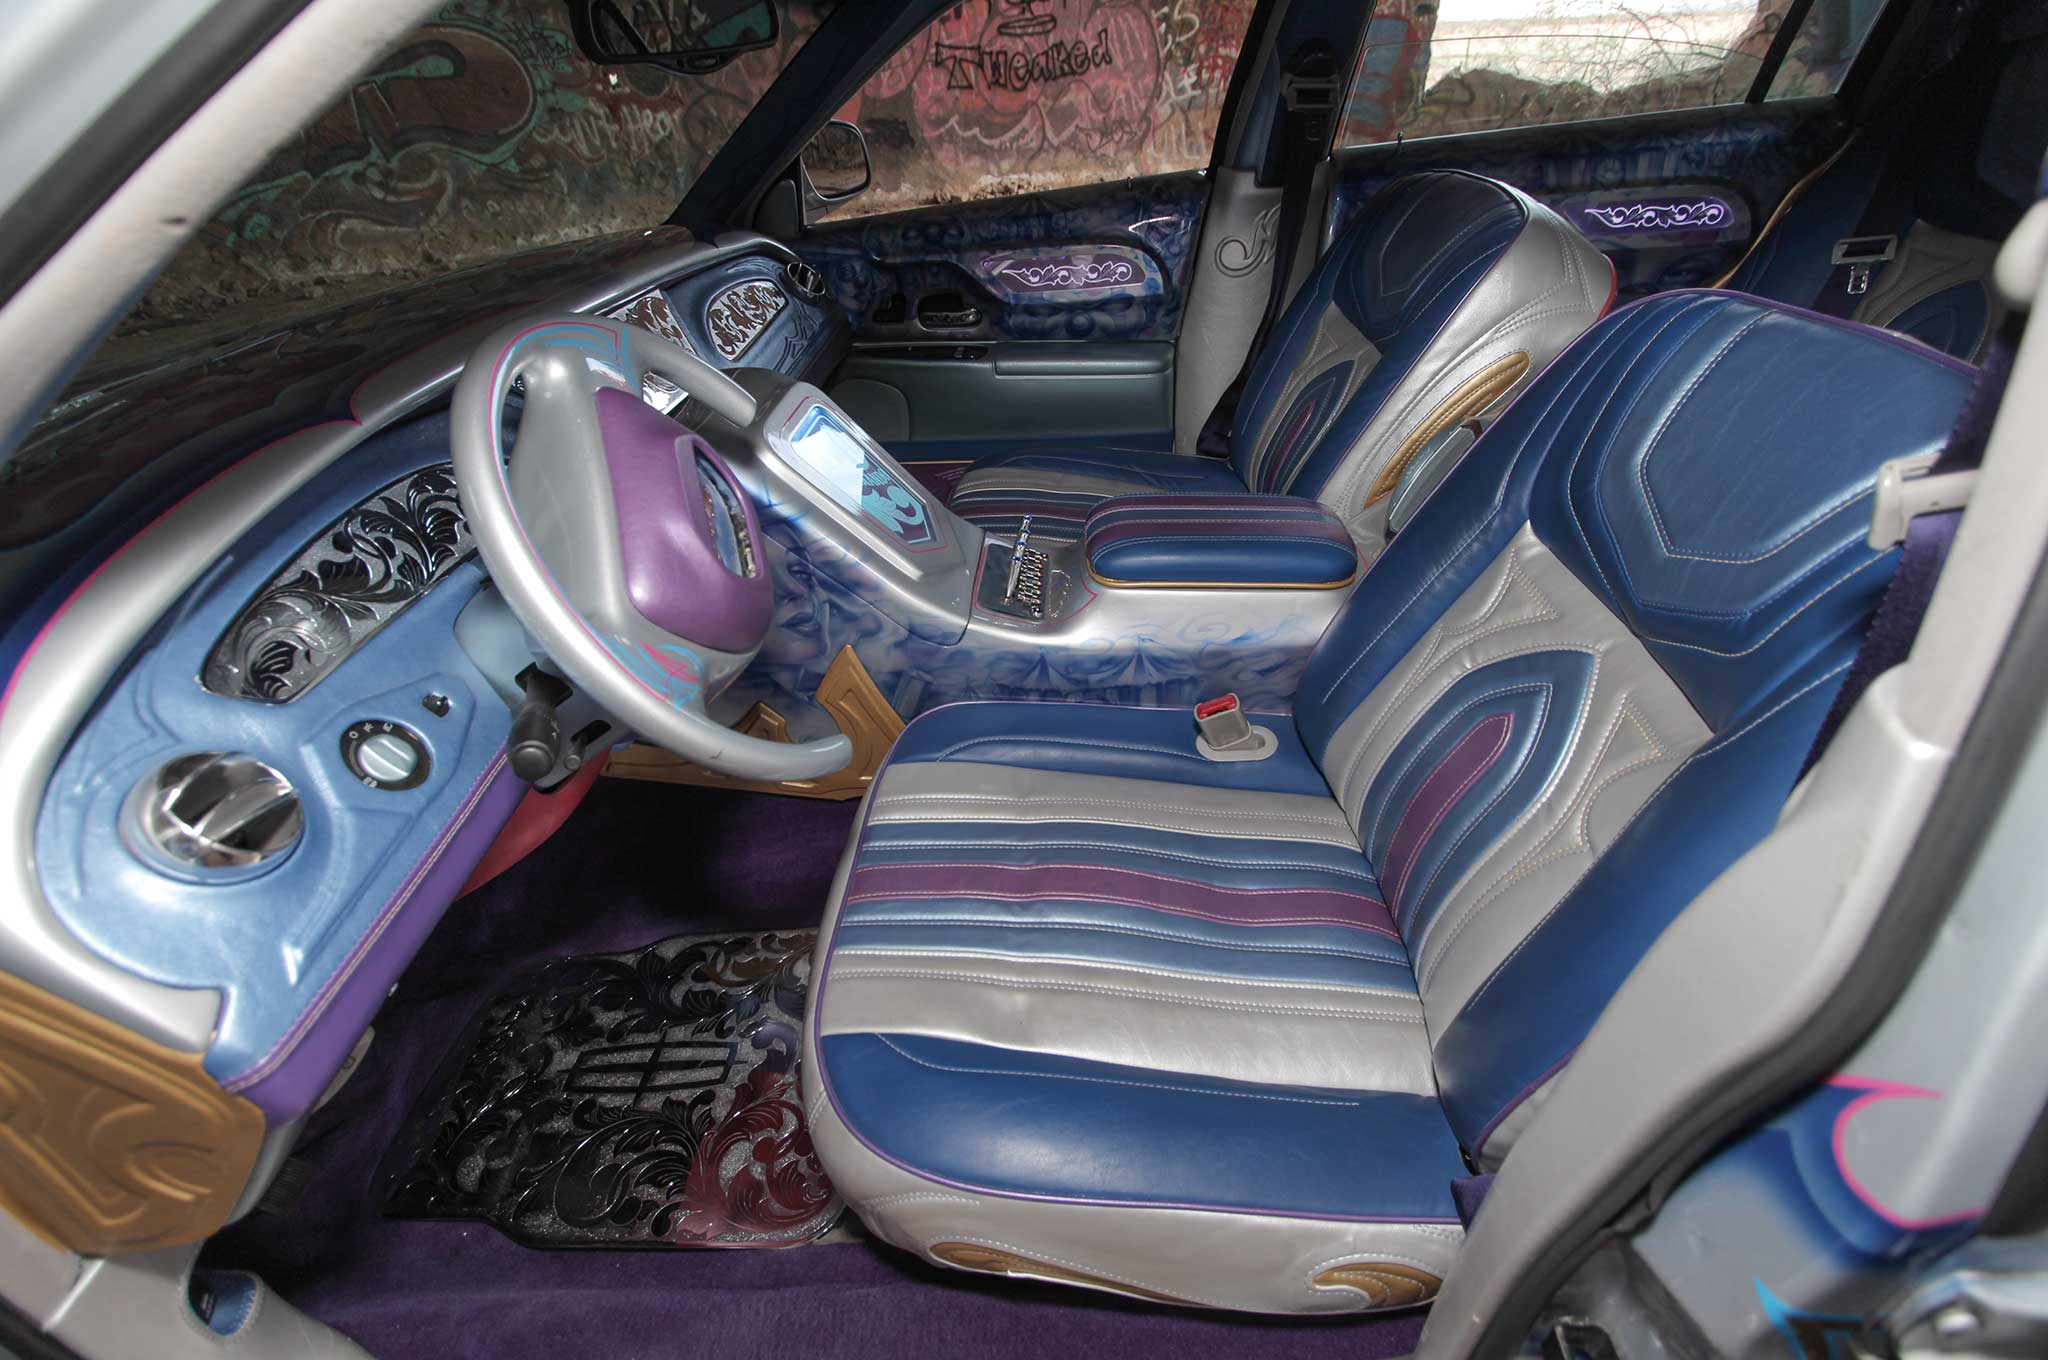 1999 lincoln town car str8 payasiando lowrider. Black Bedroom Furniture Sets. Home Design Ideas